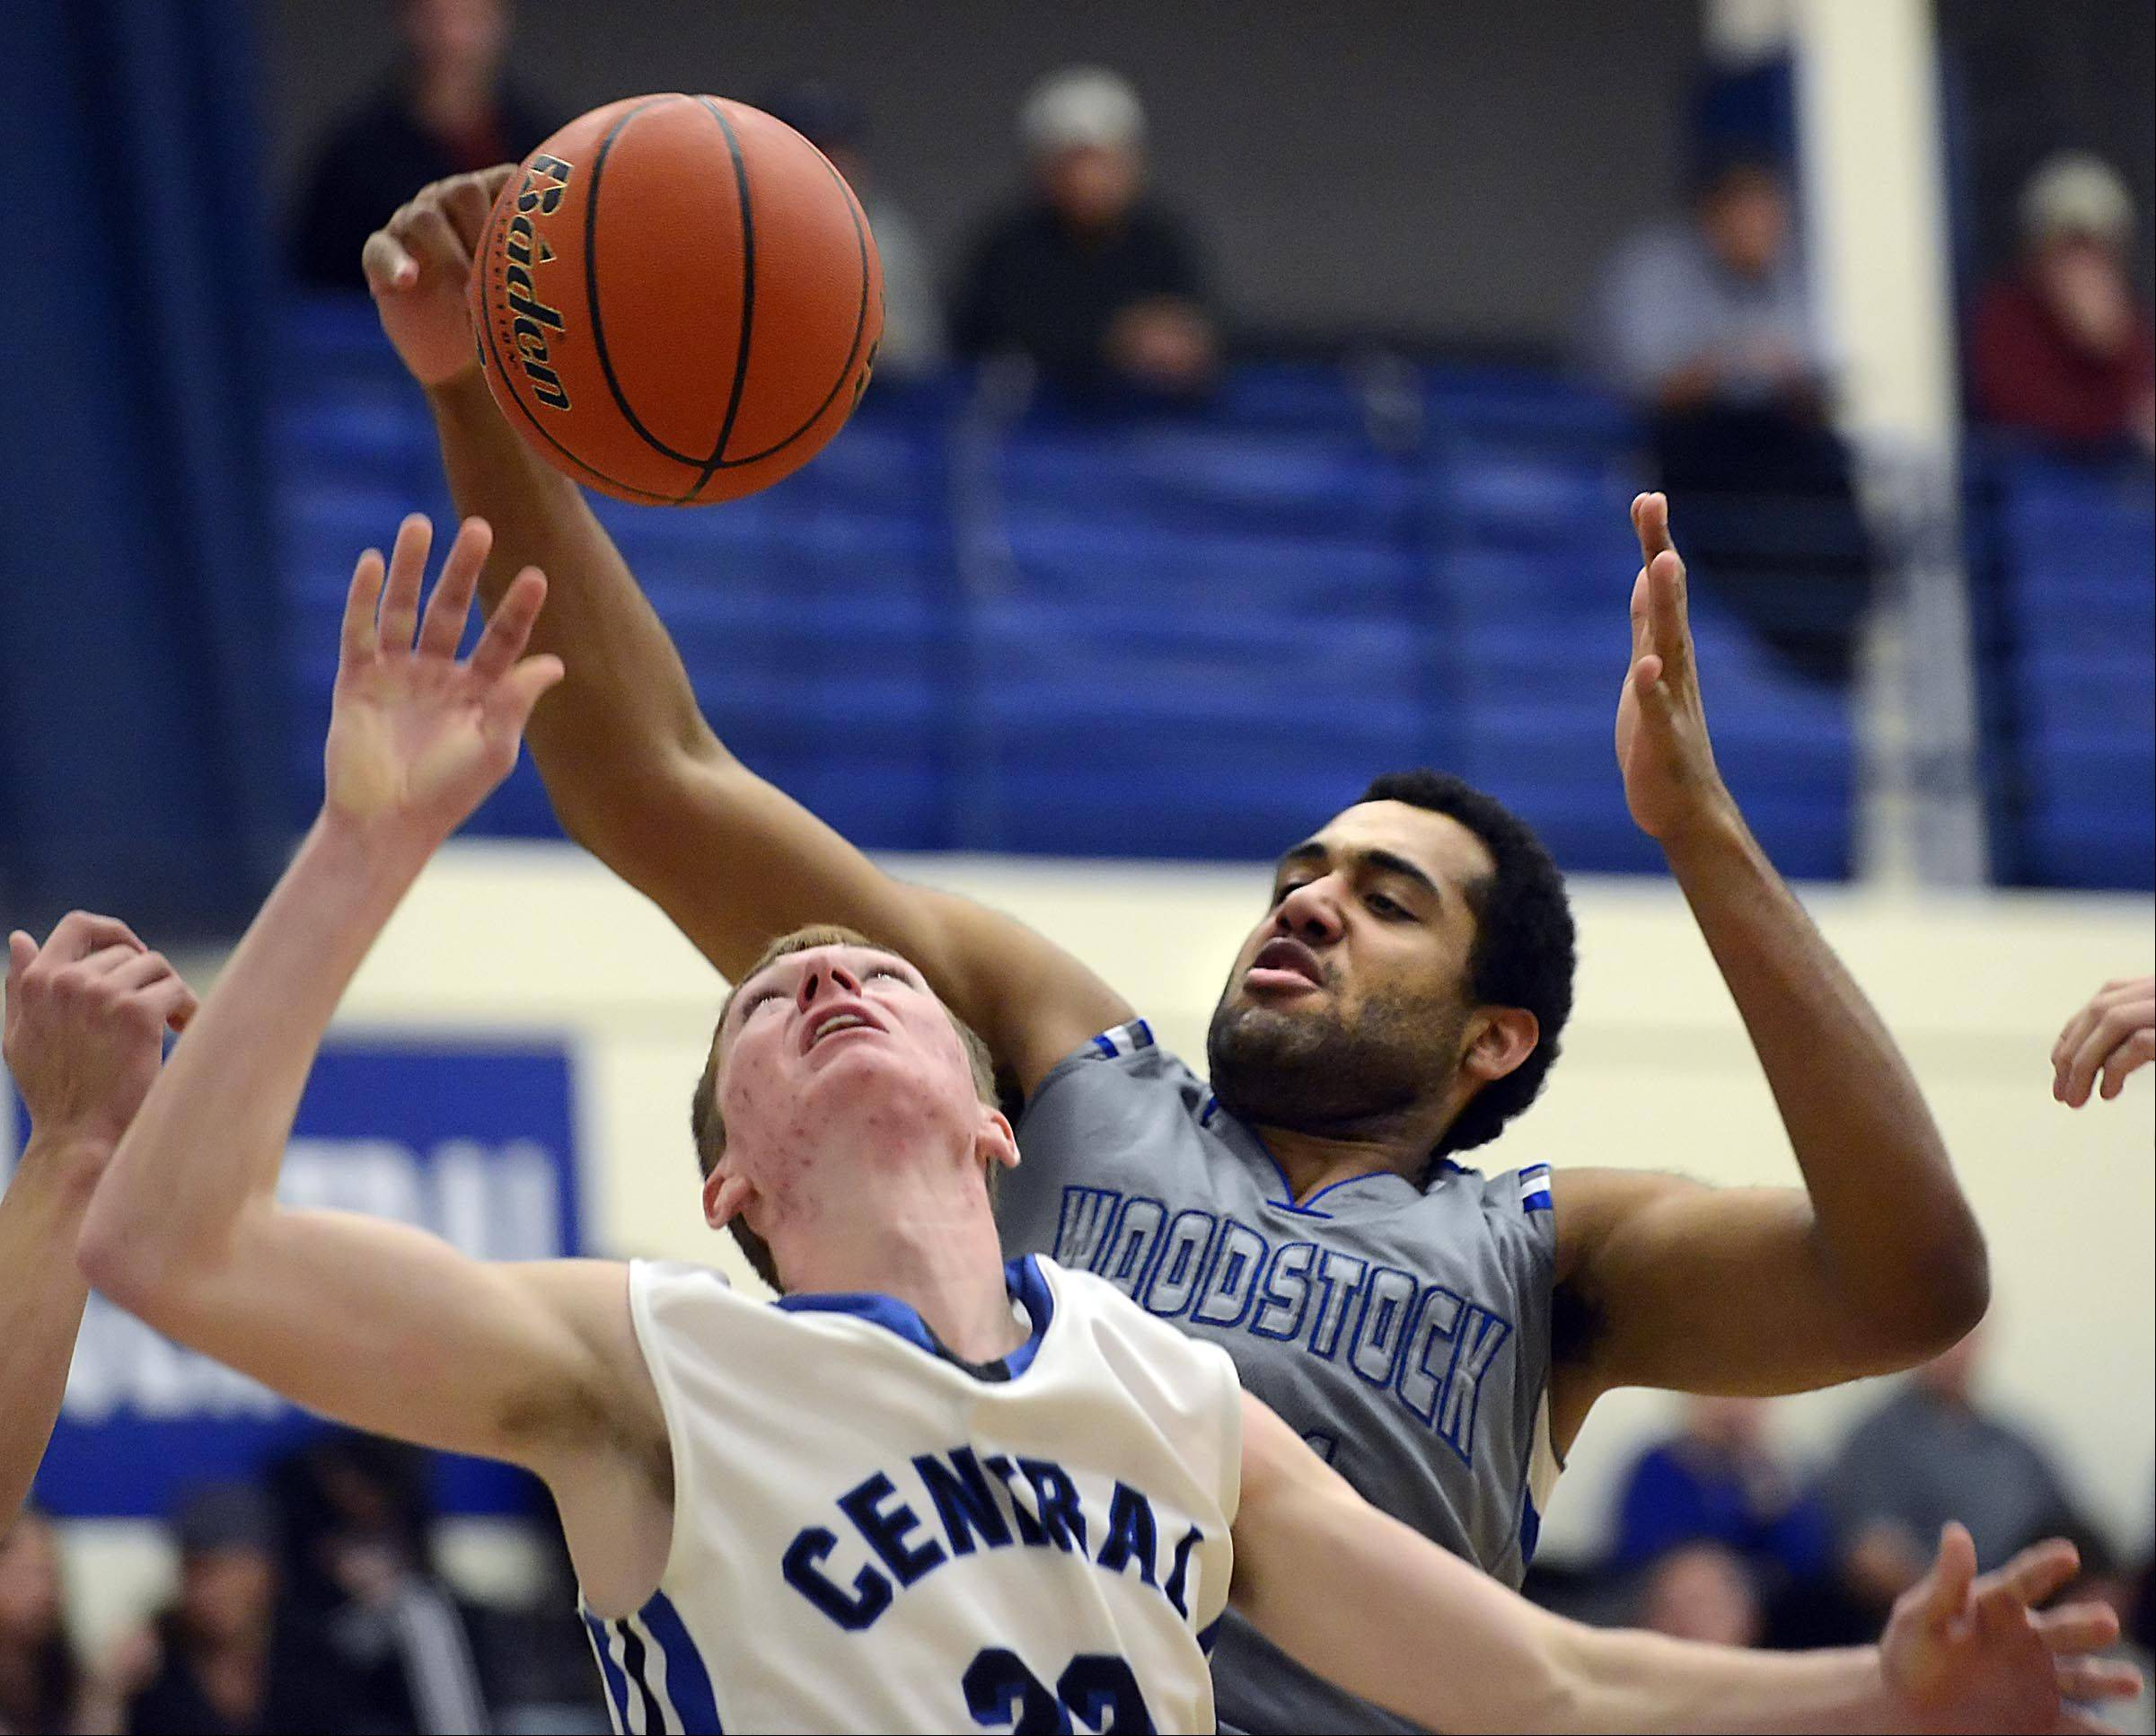 Burlington Central's Sean Fitzgerald and Woodstock's Damian Stoneking compete for a rebound Wednesday in Burlington.